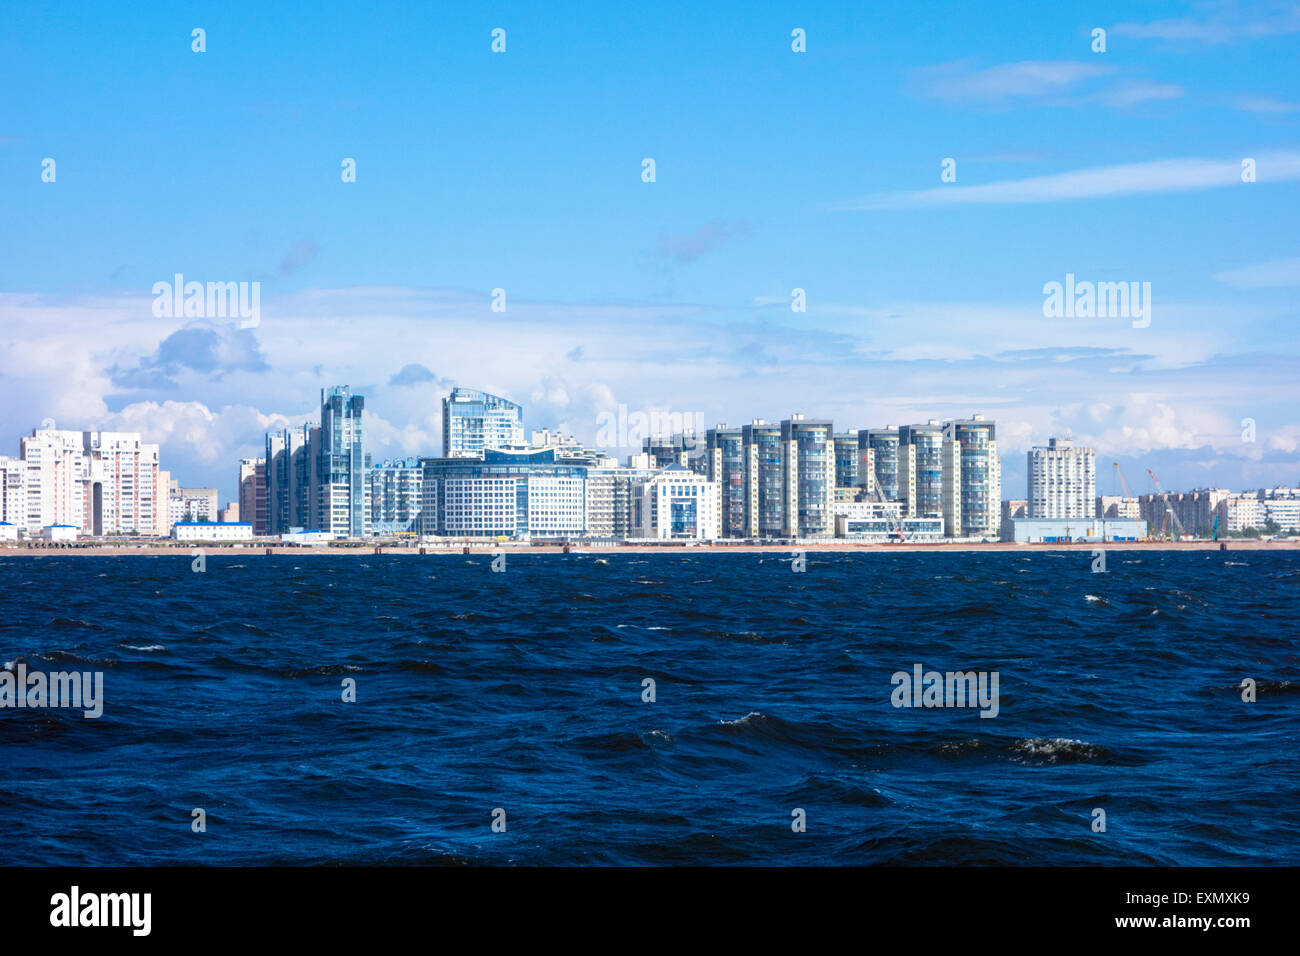 New seafront, Saint Petersburg, Russia - Stock Image